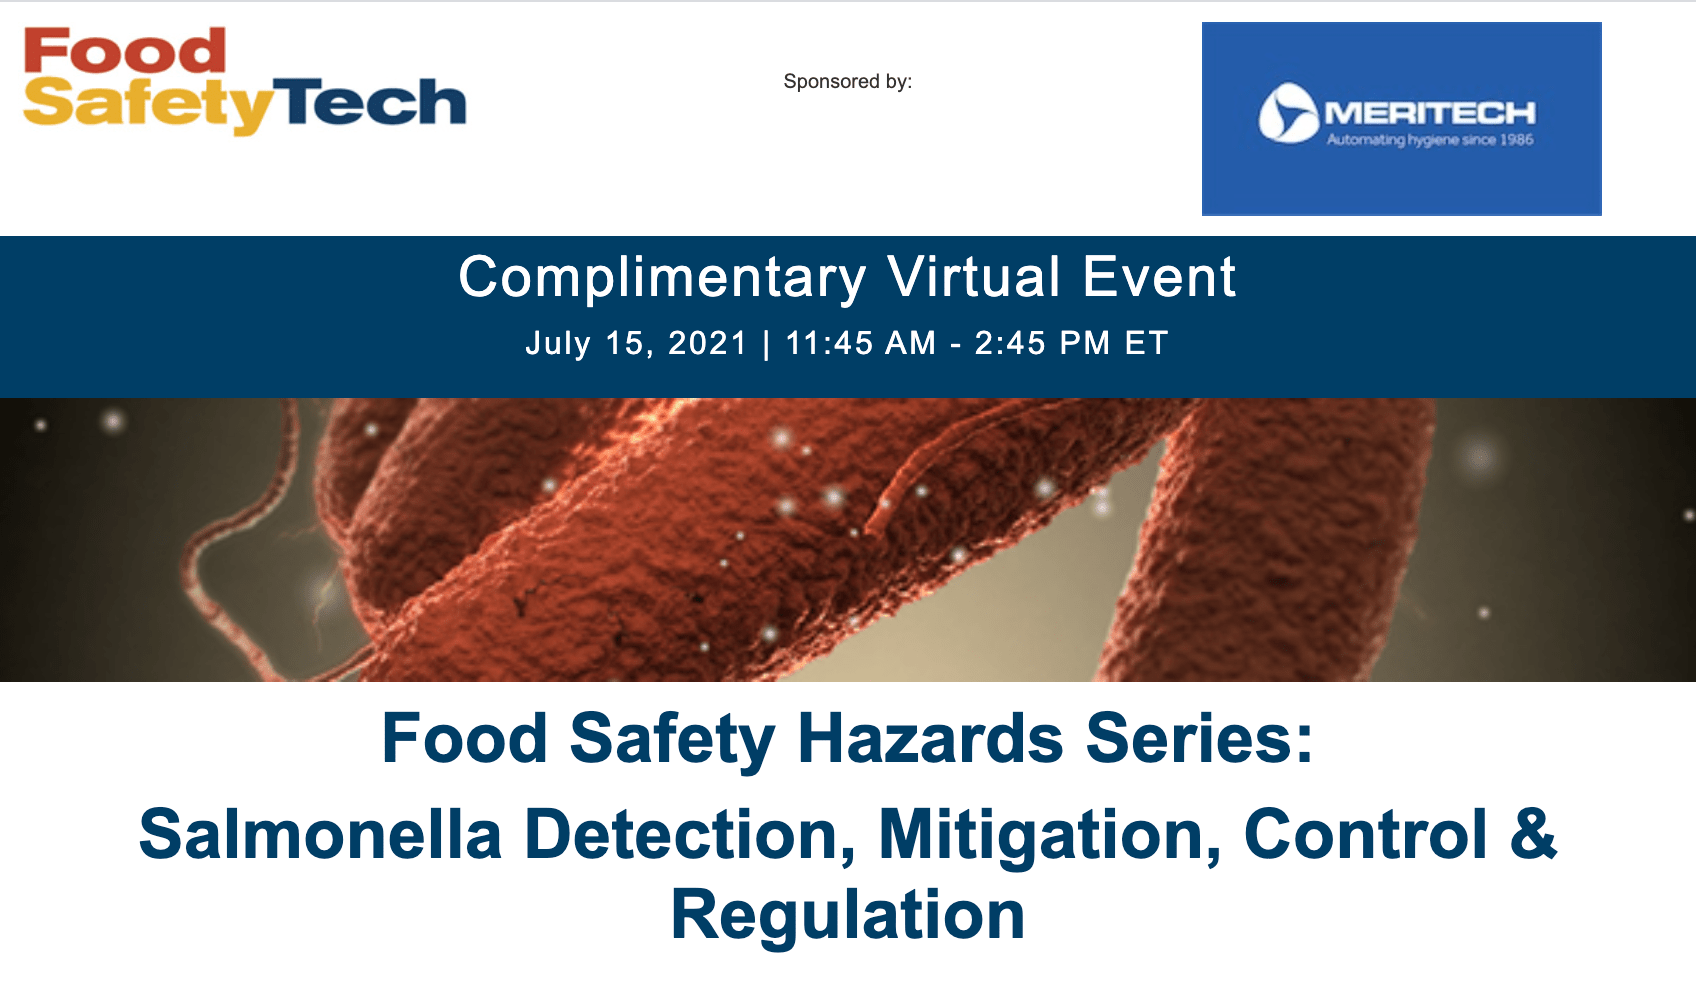 Meritech to Speak at Upcoming Salmonella Hazards Event with Food Safety Tech